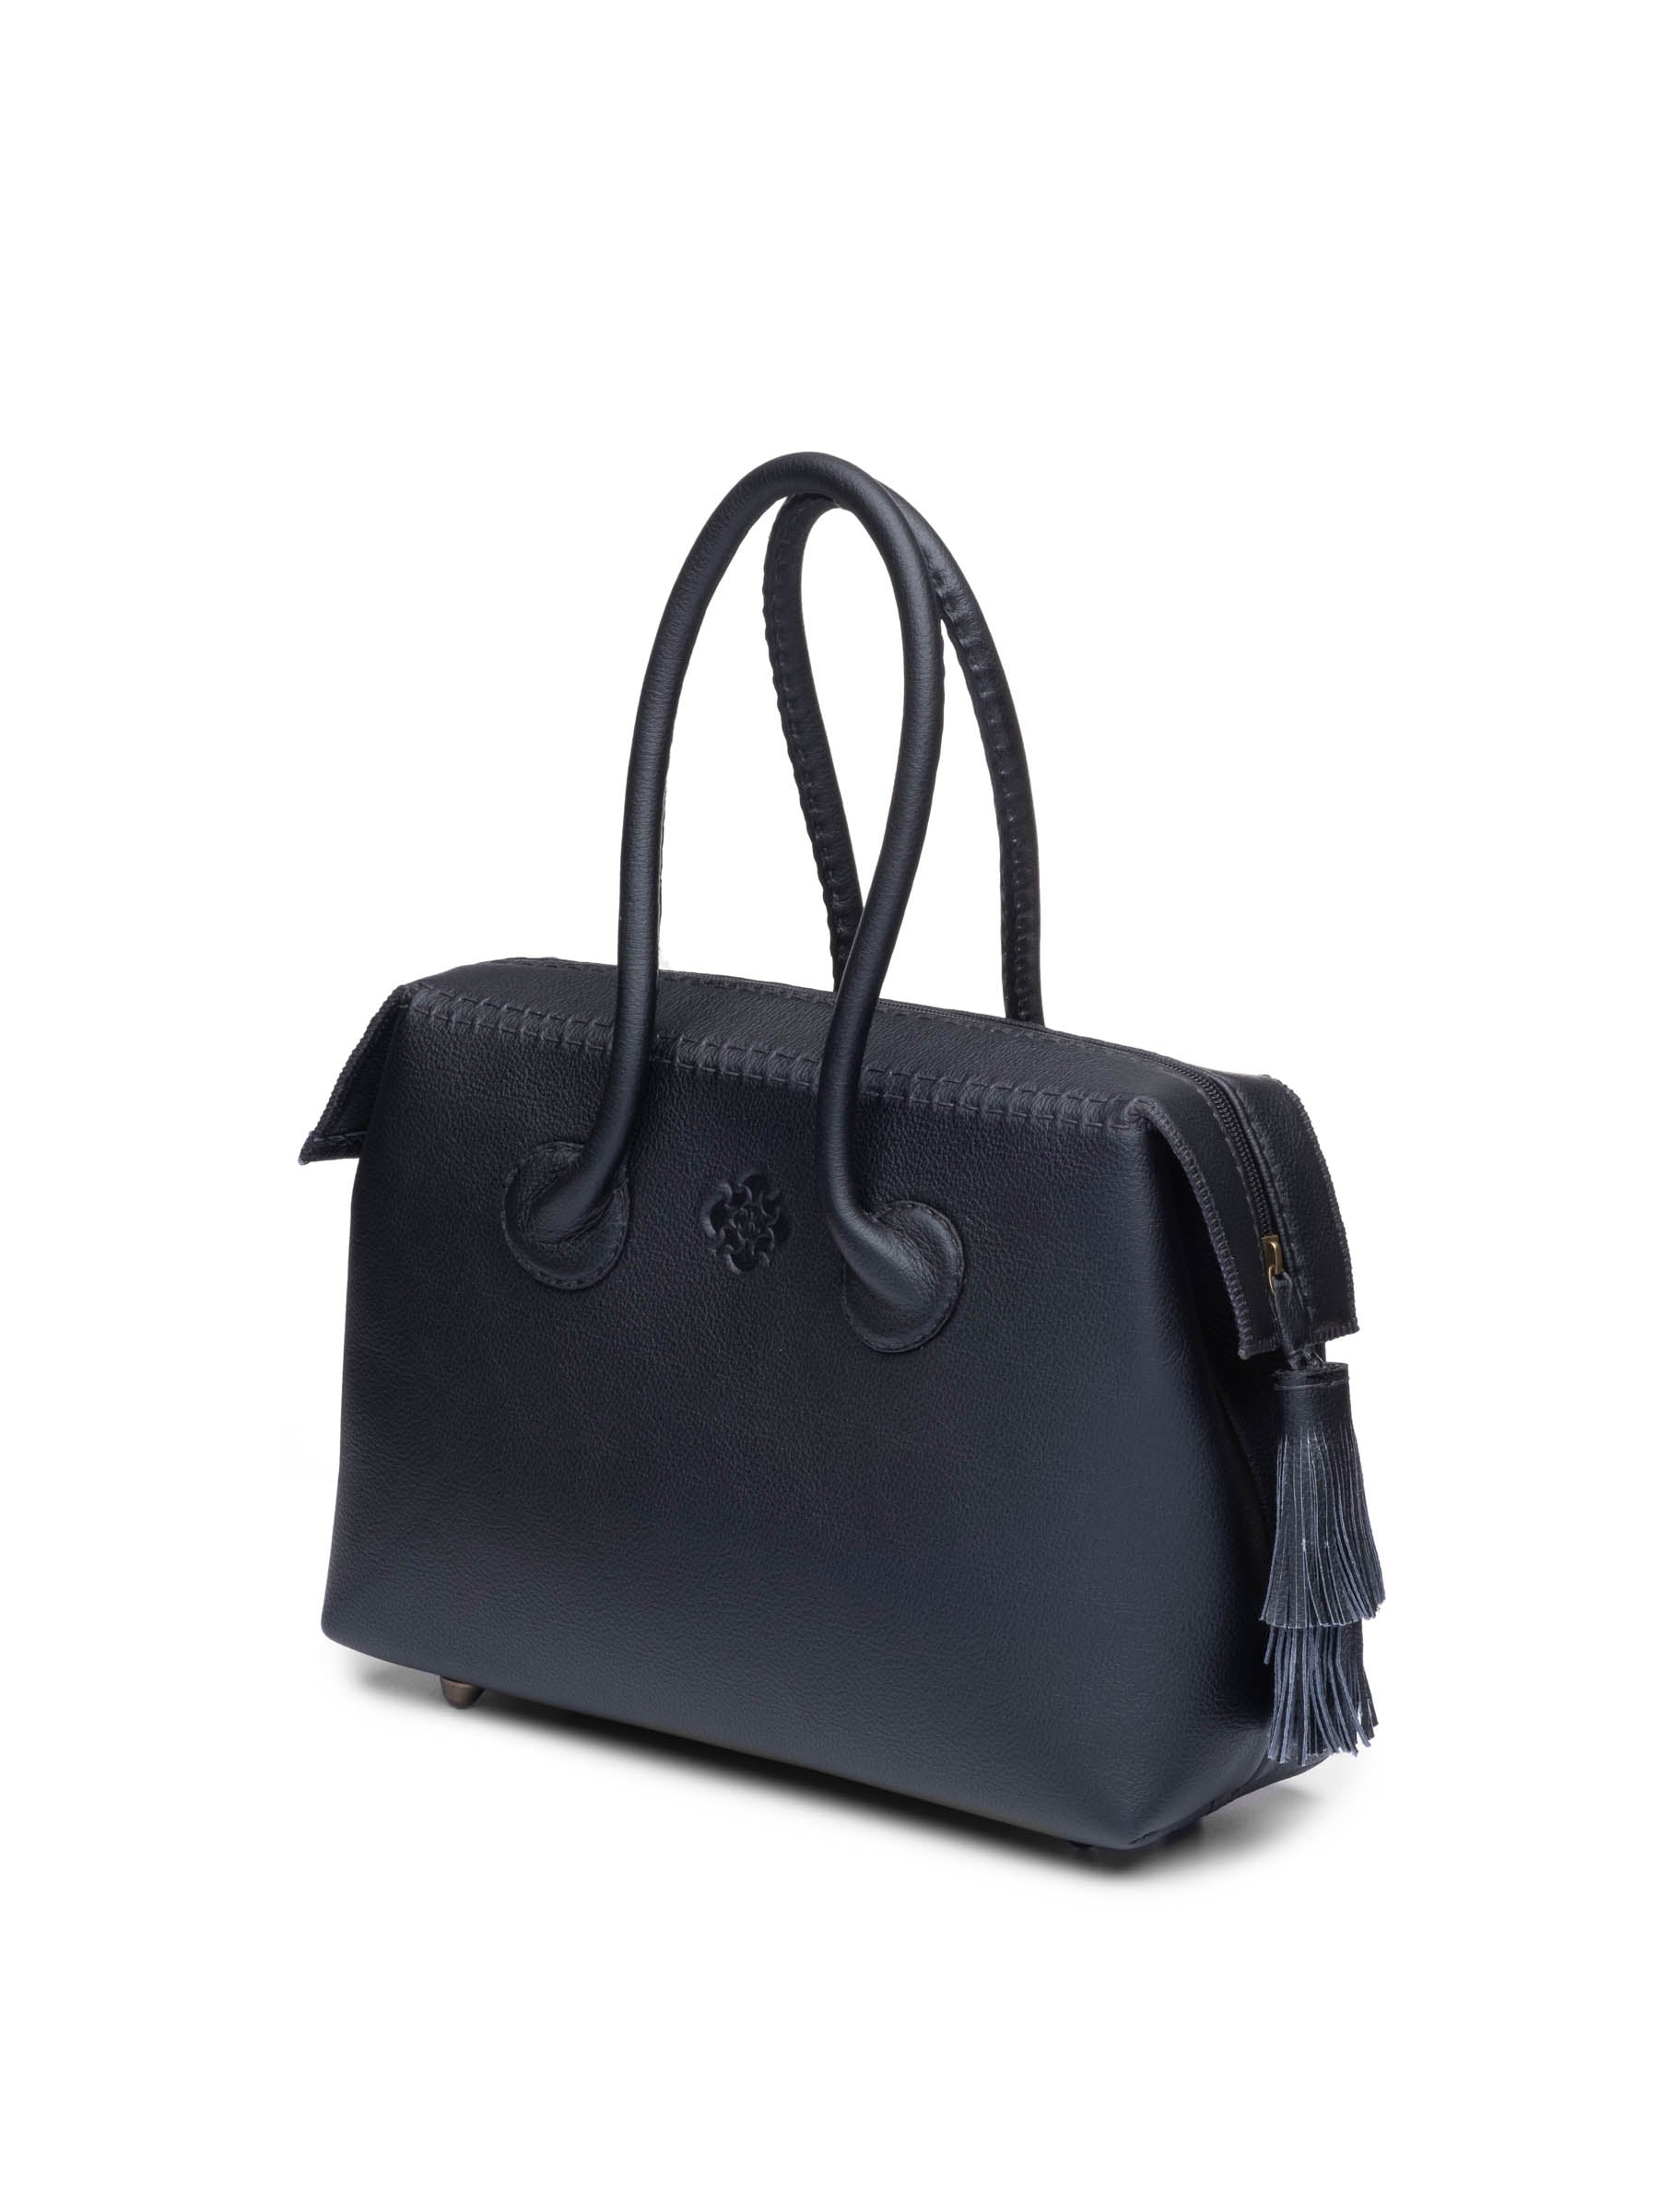 Black Petit Handbag